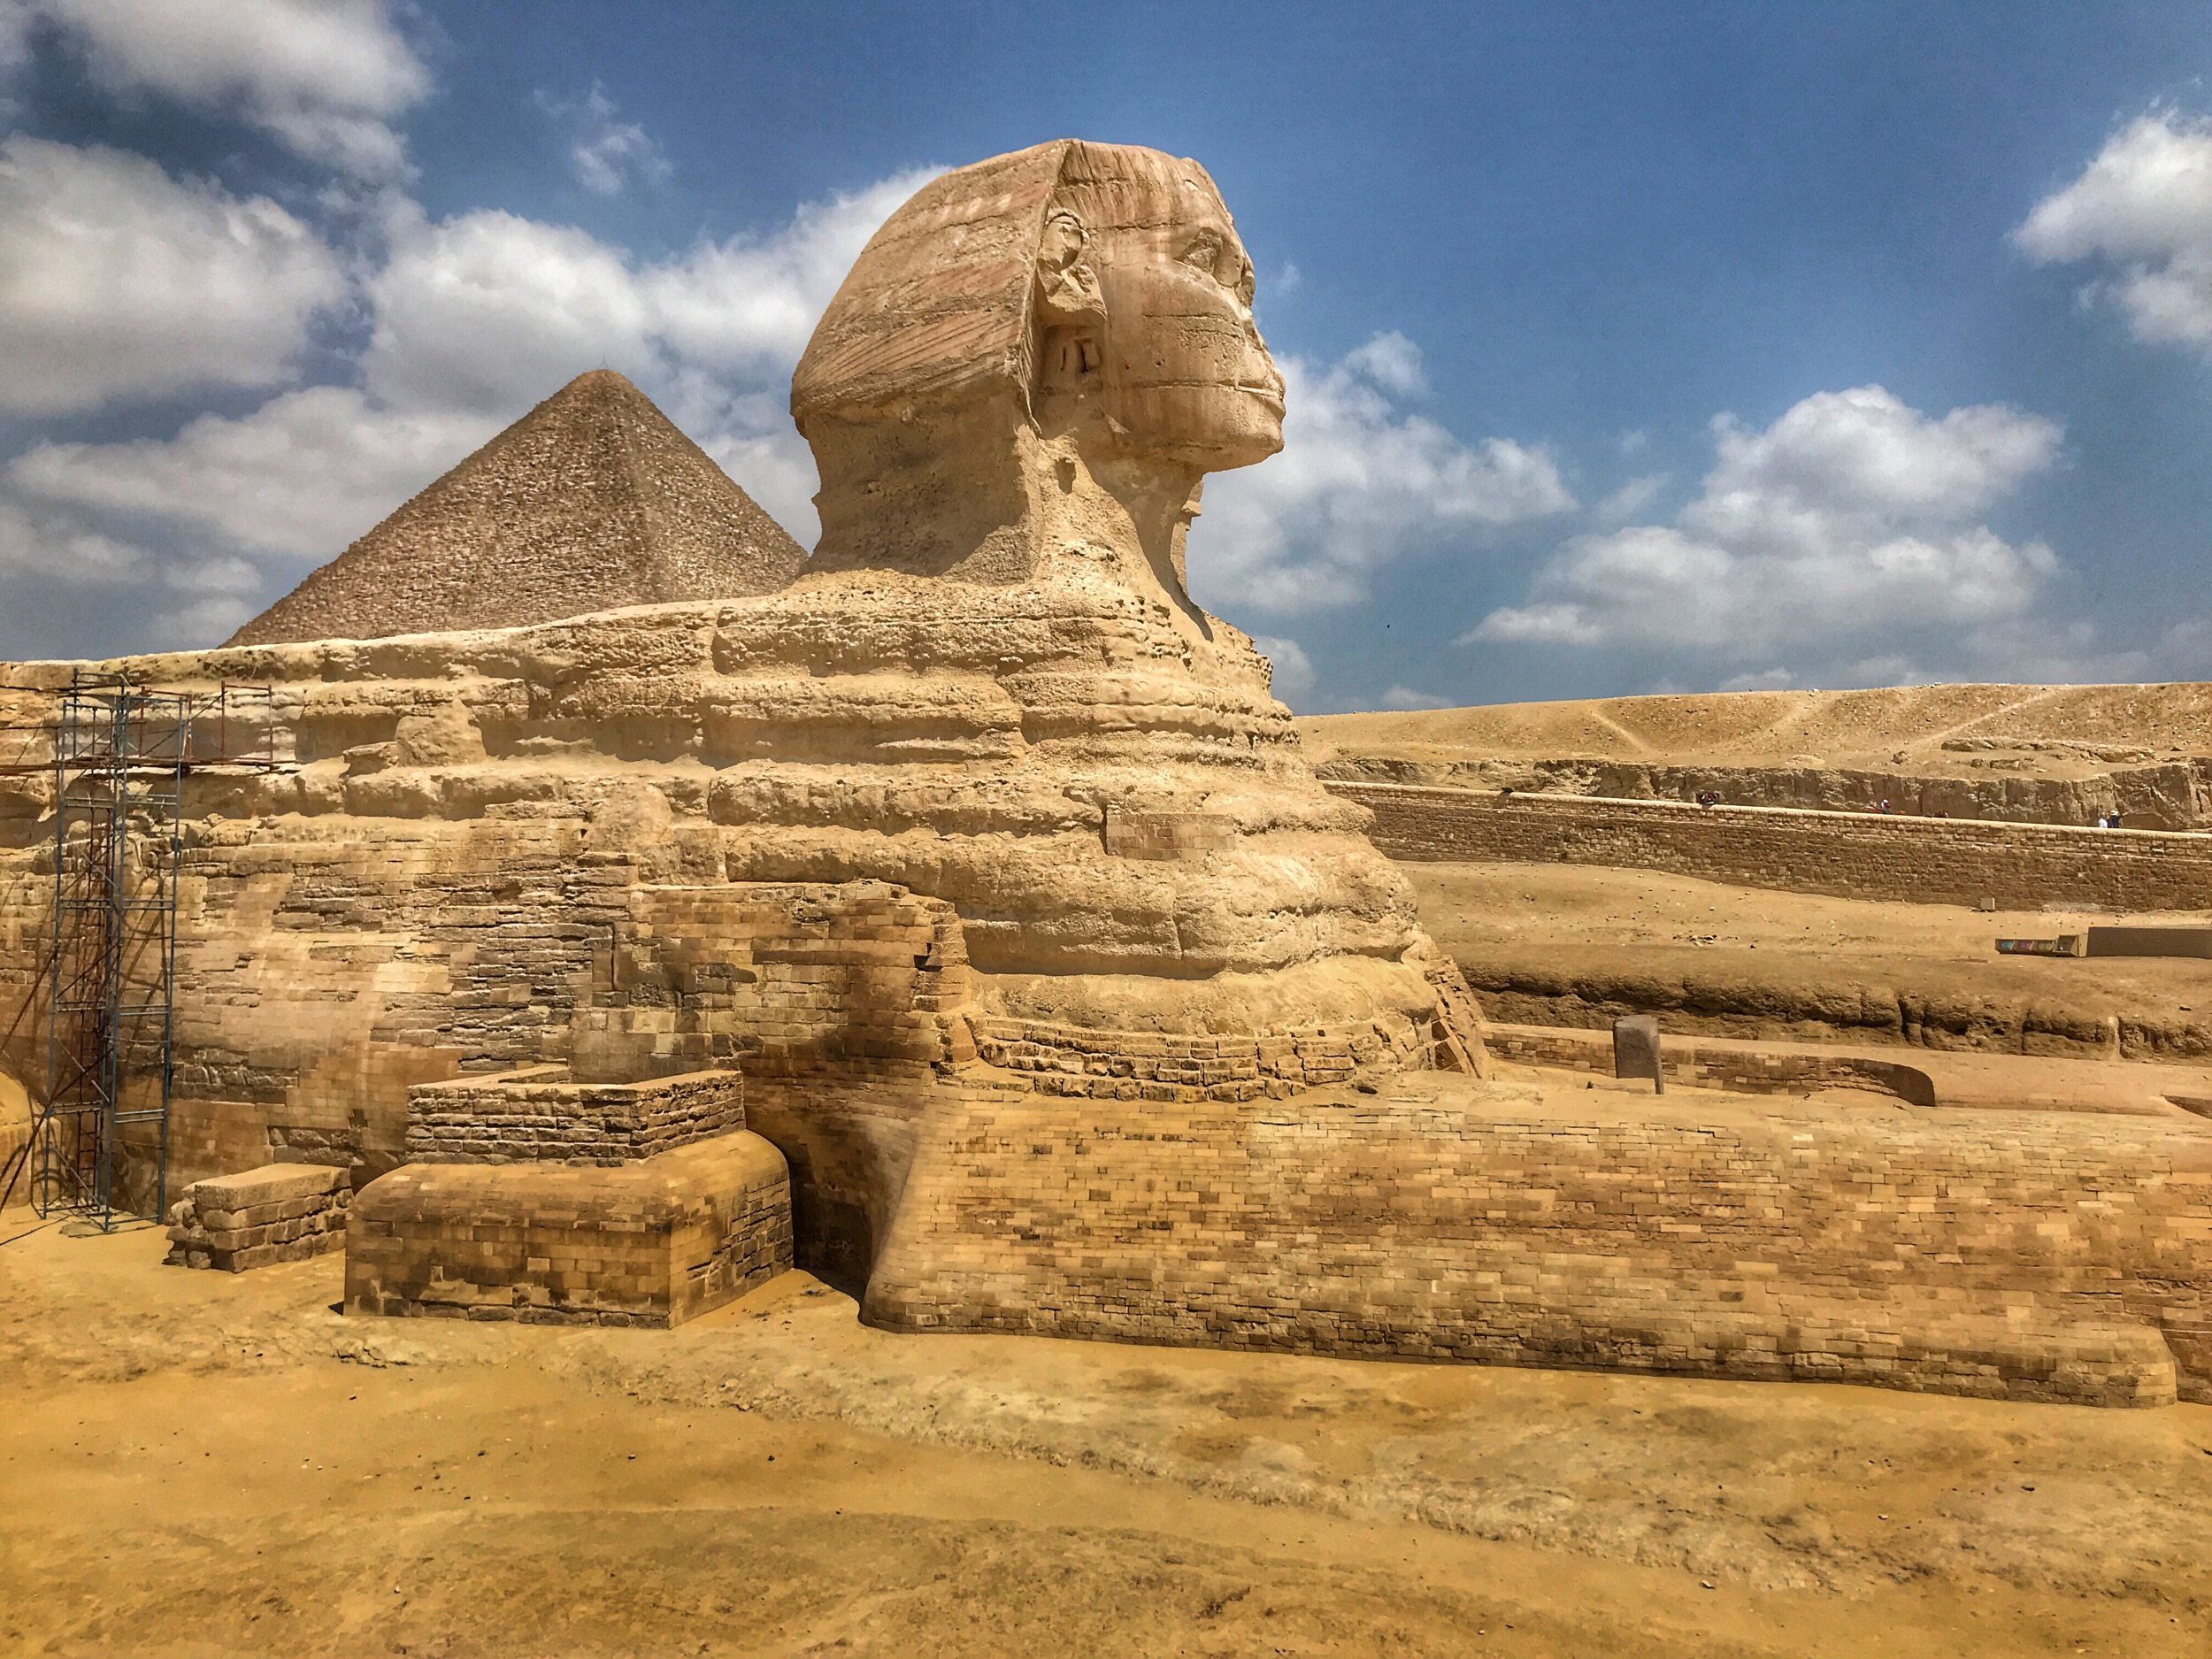 Riddle me this: What's it like visiting the Great Sphinx of Giza?